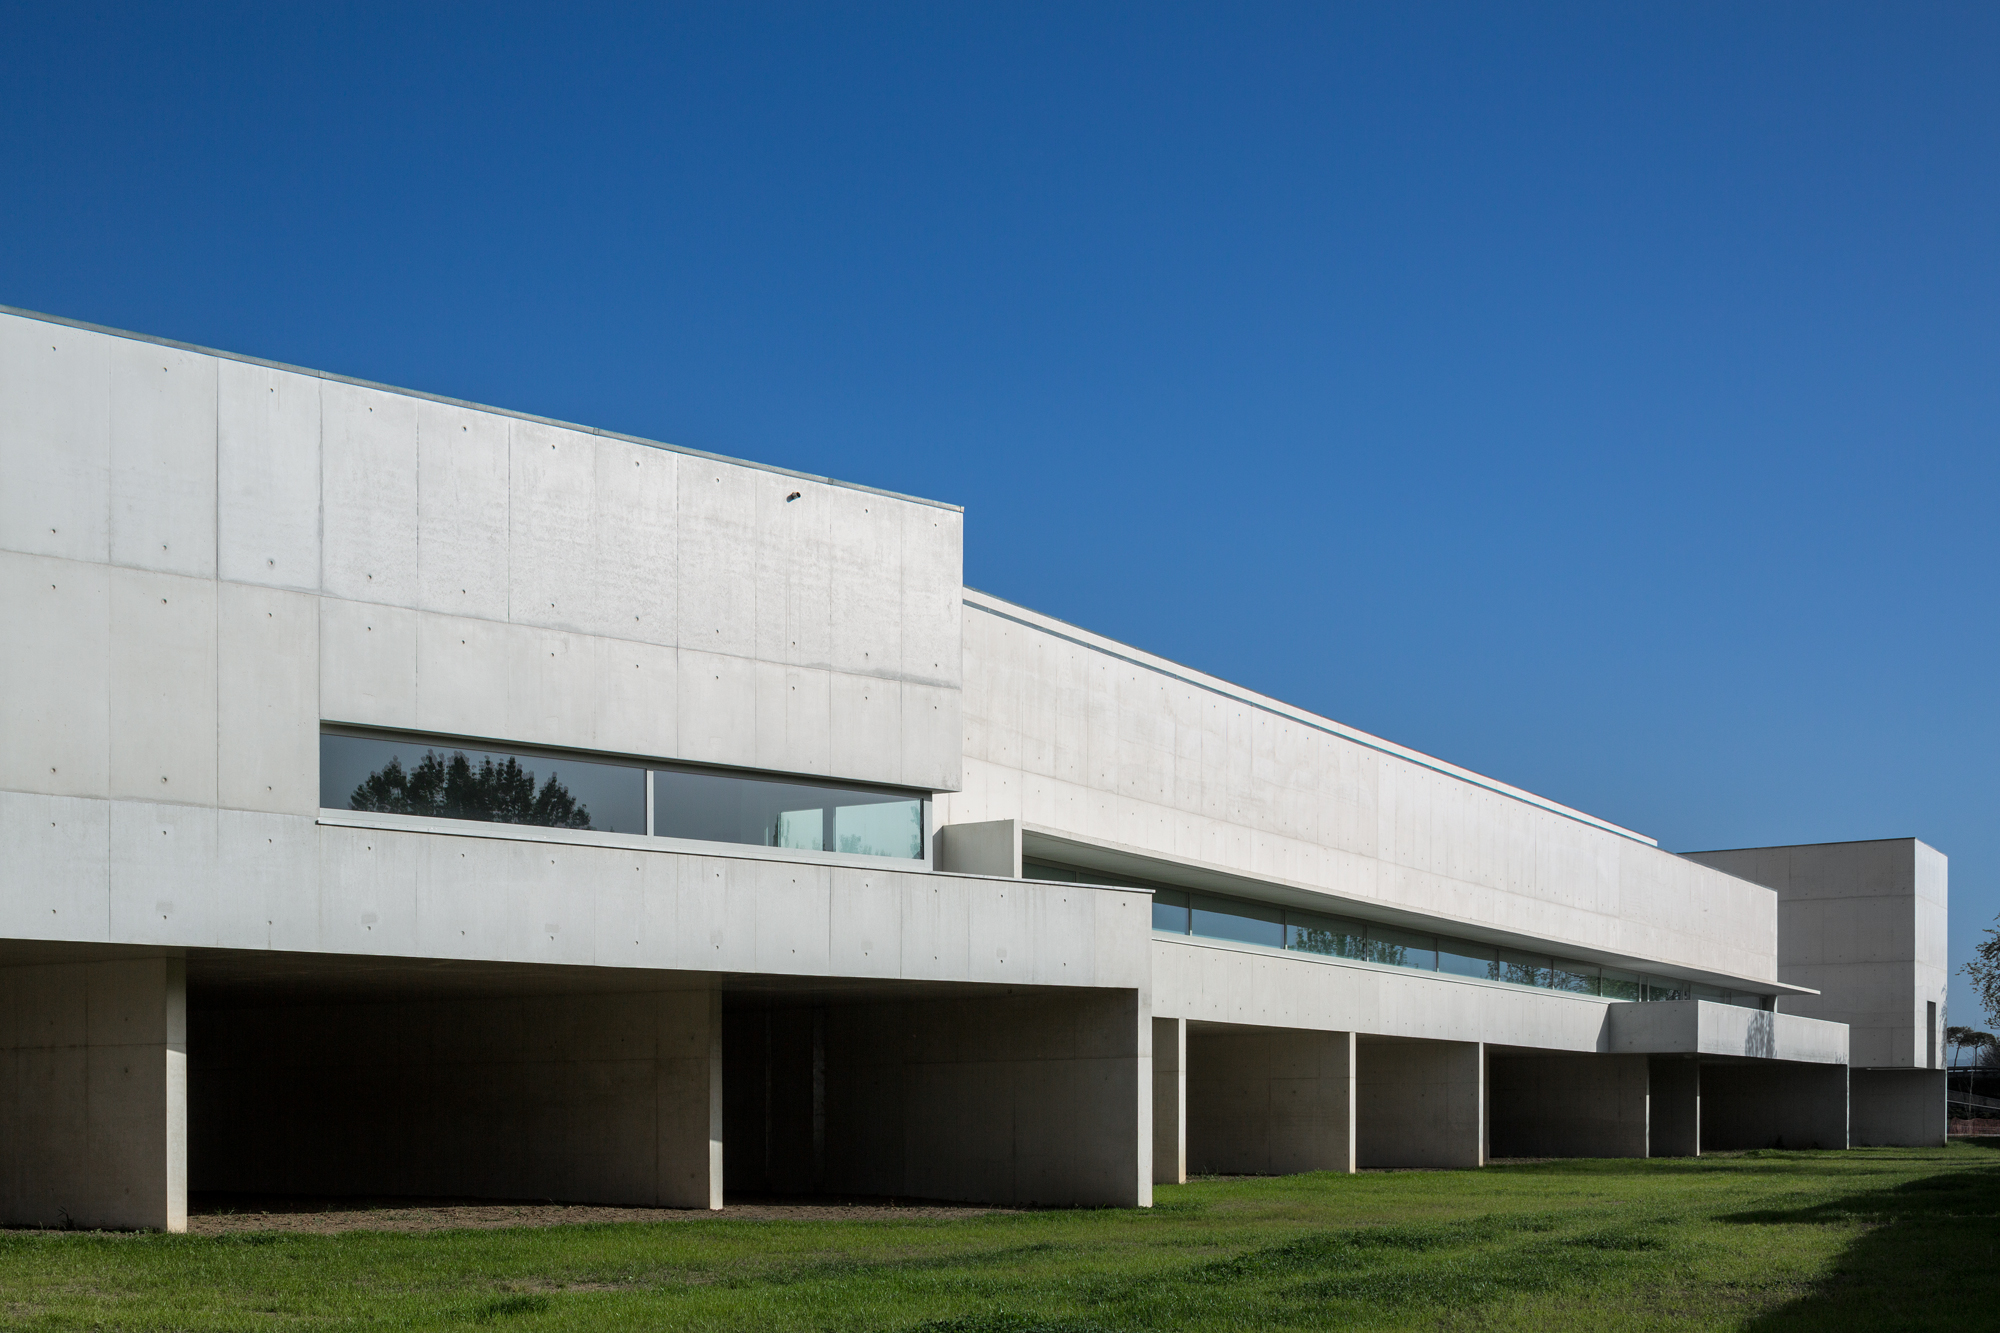 The Best Museums & Art Galleries in Portugal museums The Best Museums & Art Galleries in Portugal Nadir Afonso Contemporary Art Museum